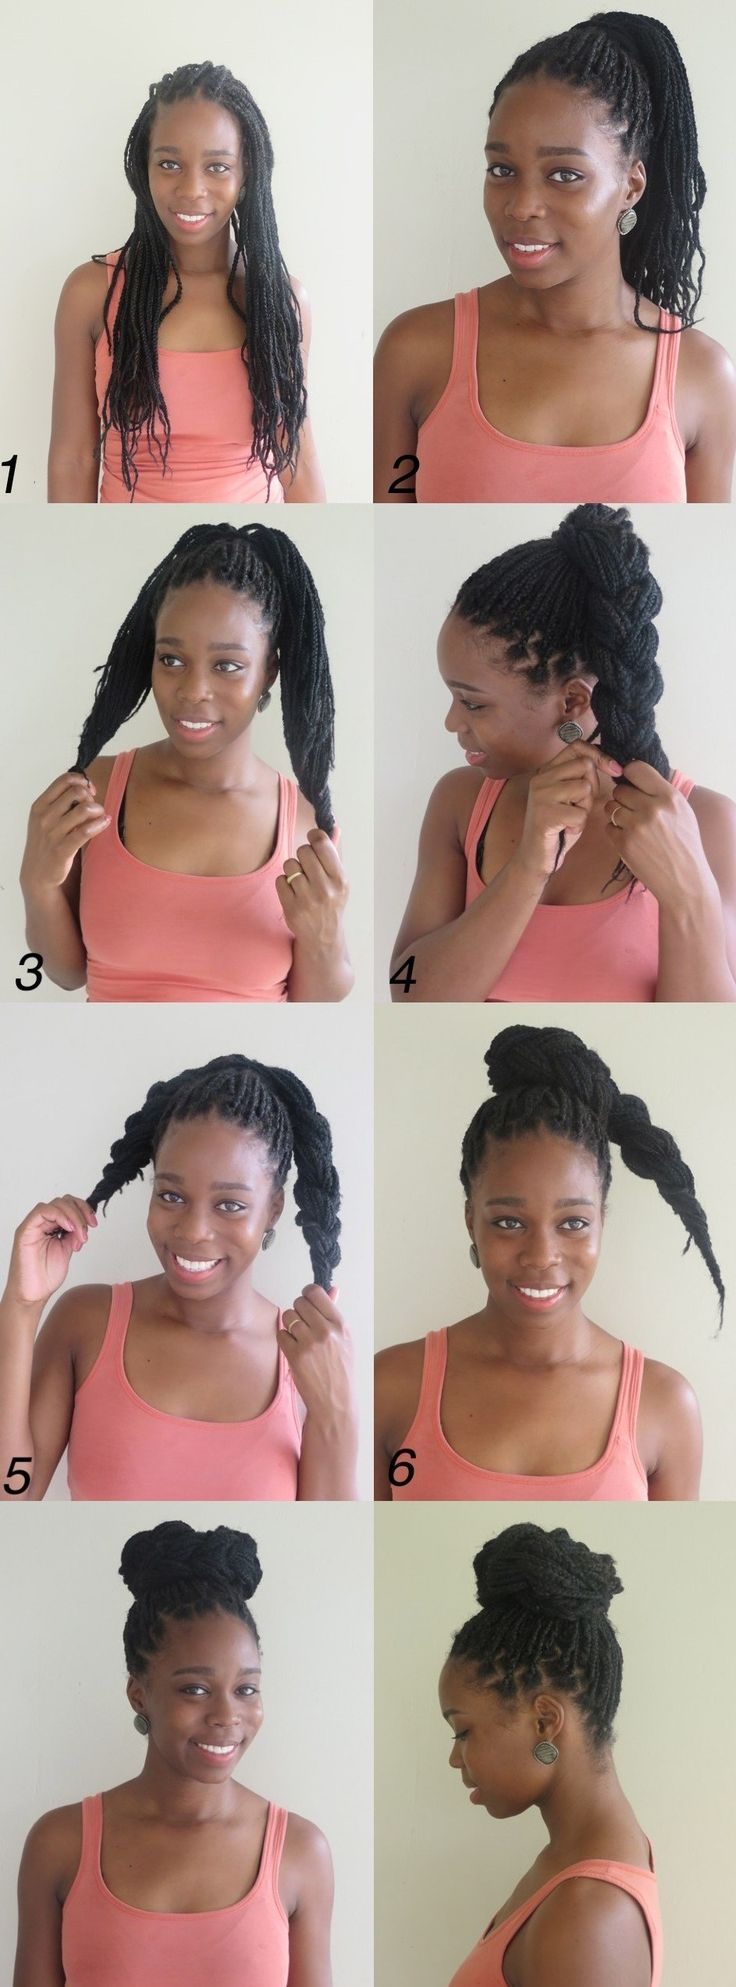 10 Instructions Directing You on How to Style Box Braids                                                                                                                                                                                 More